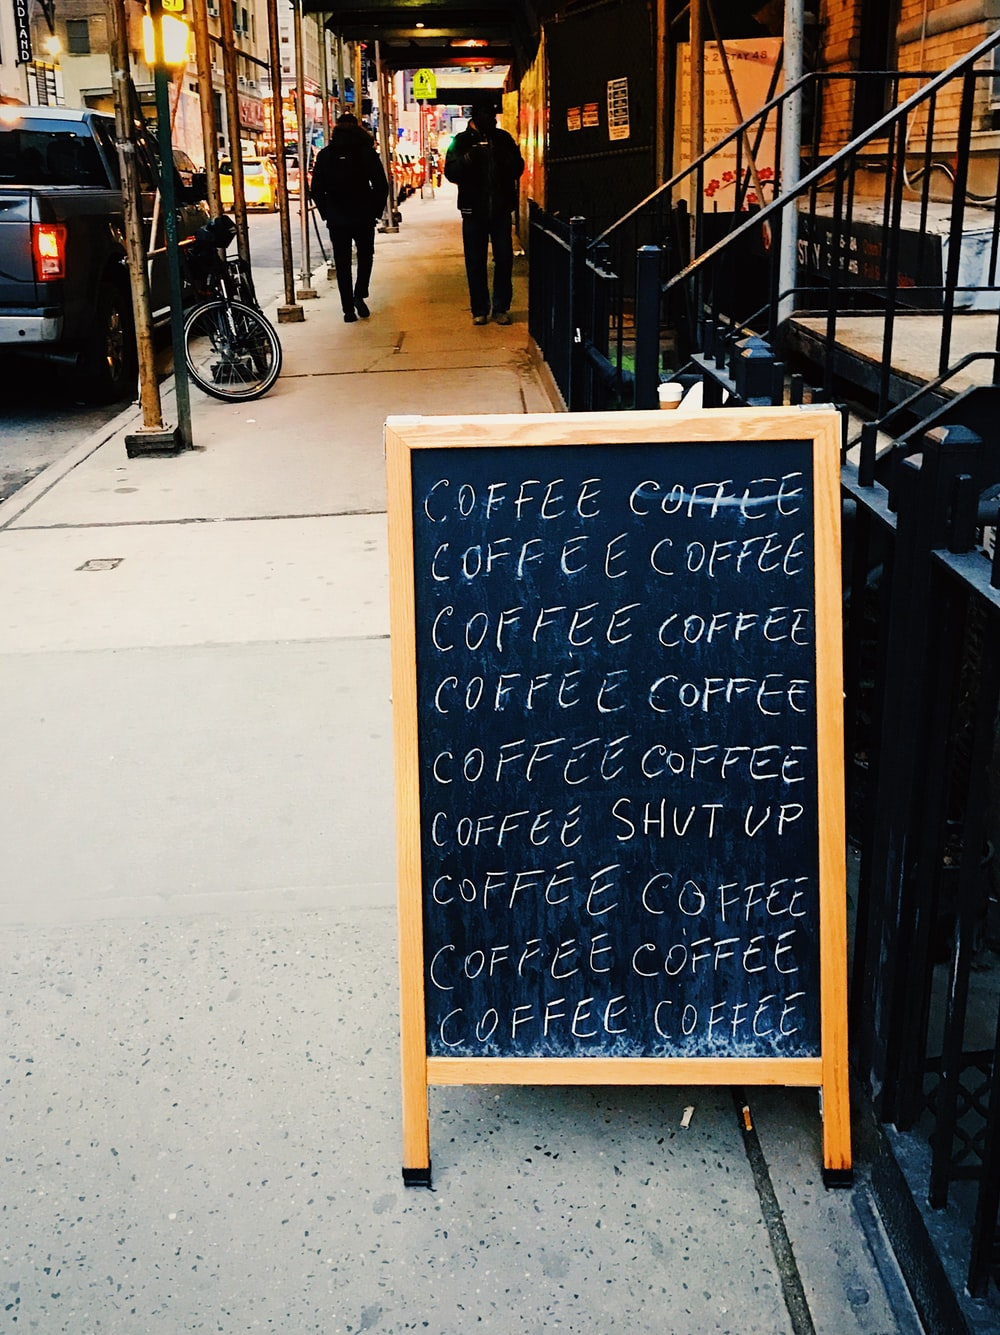 coffee signs near buildings